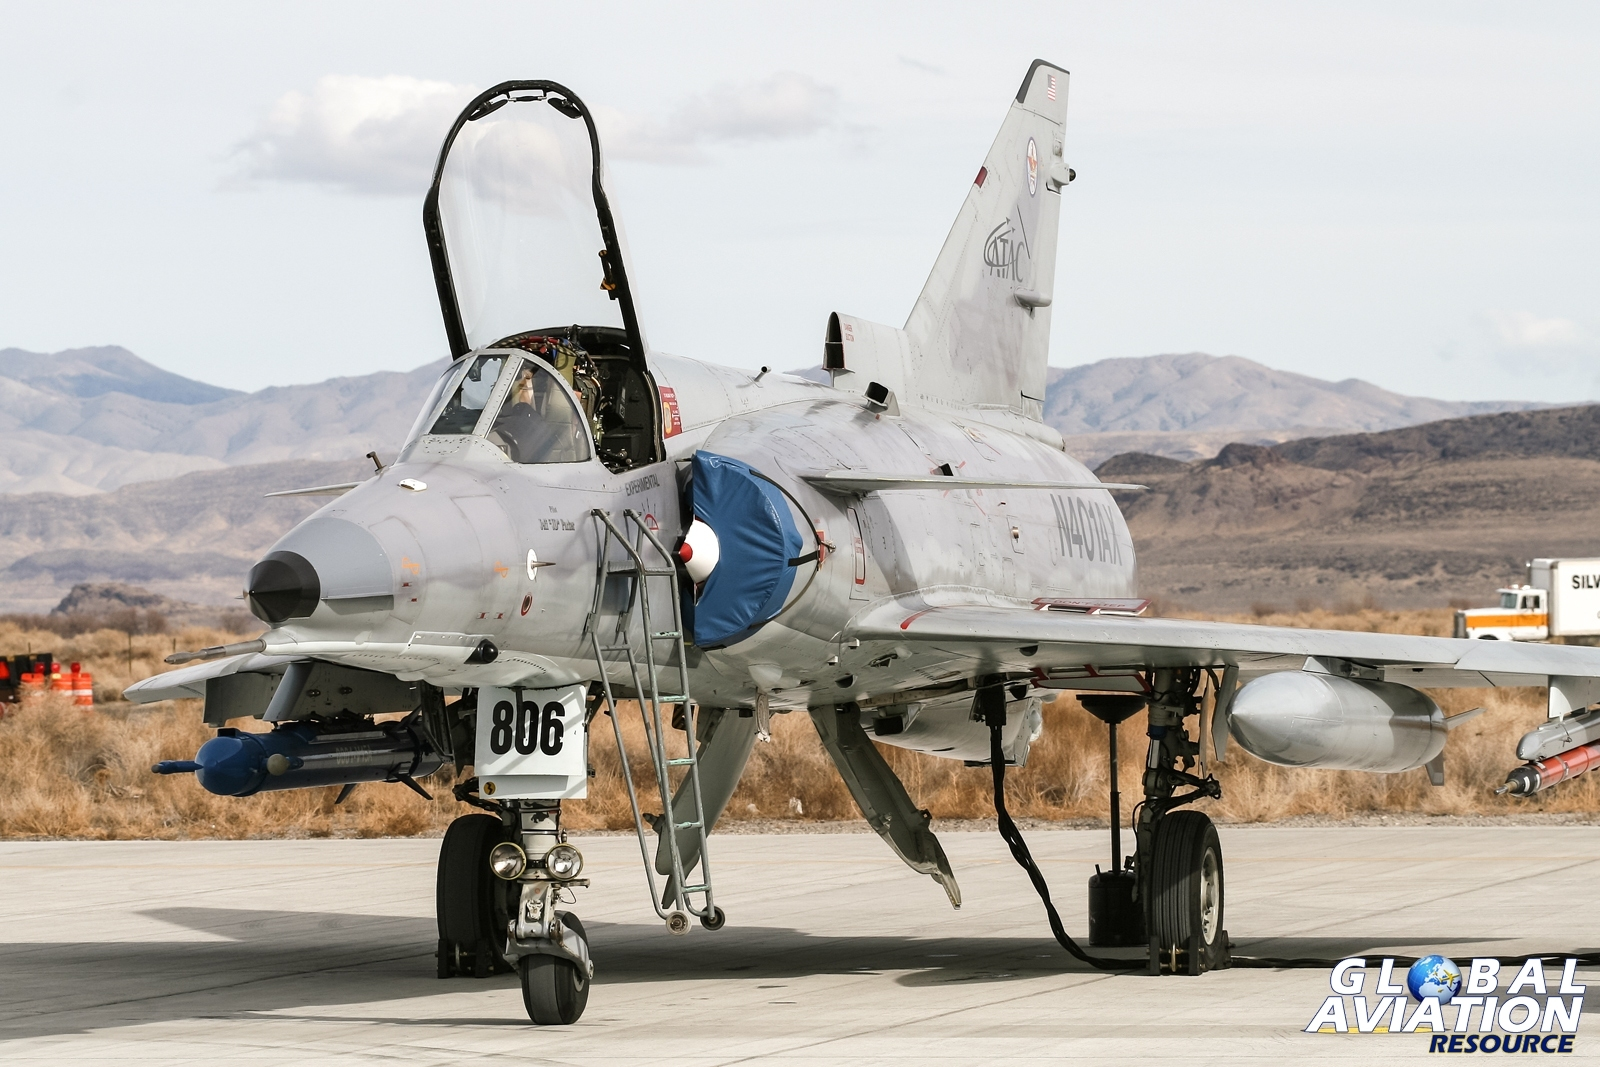 ATAC Kfir at Fallon in support of Air Wing training in 2008 © Karl Drage - Global Aviation Resource